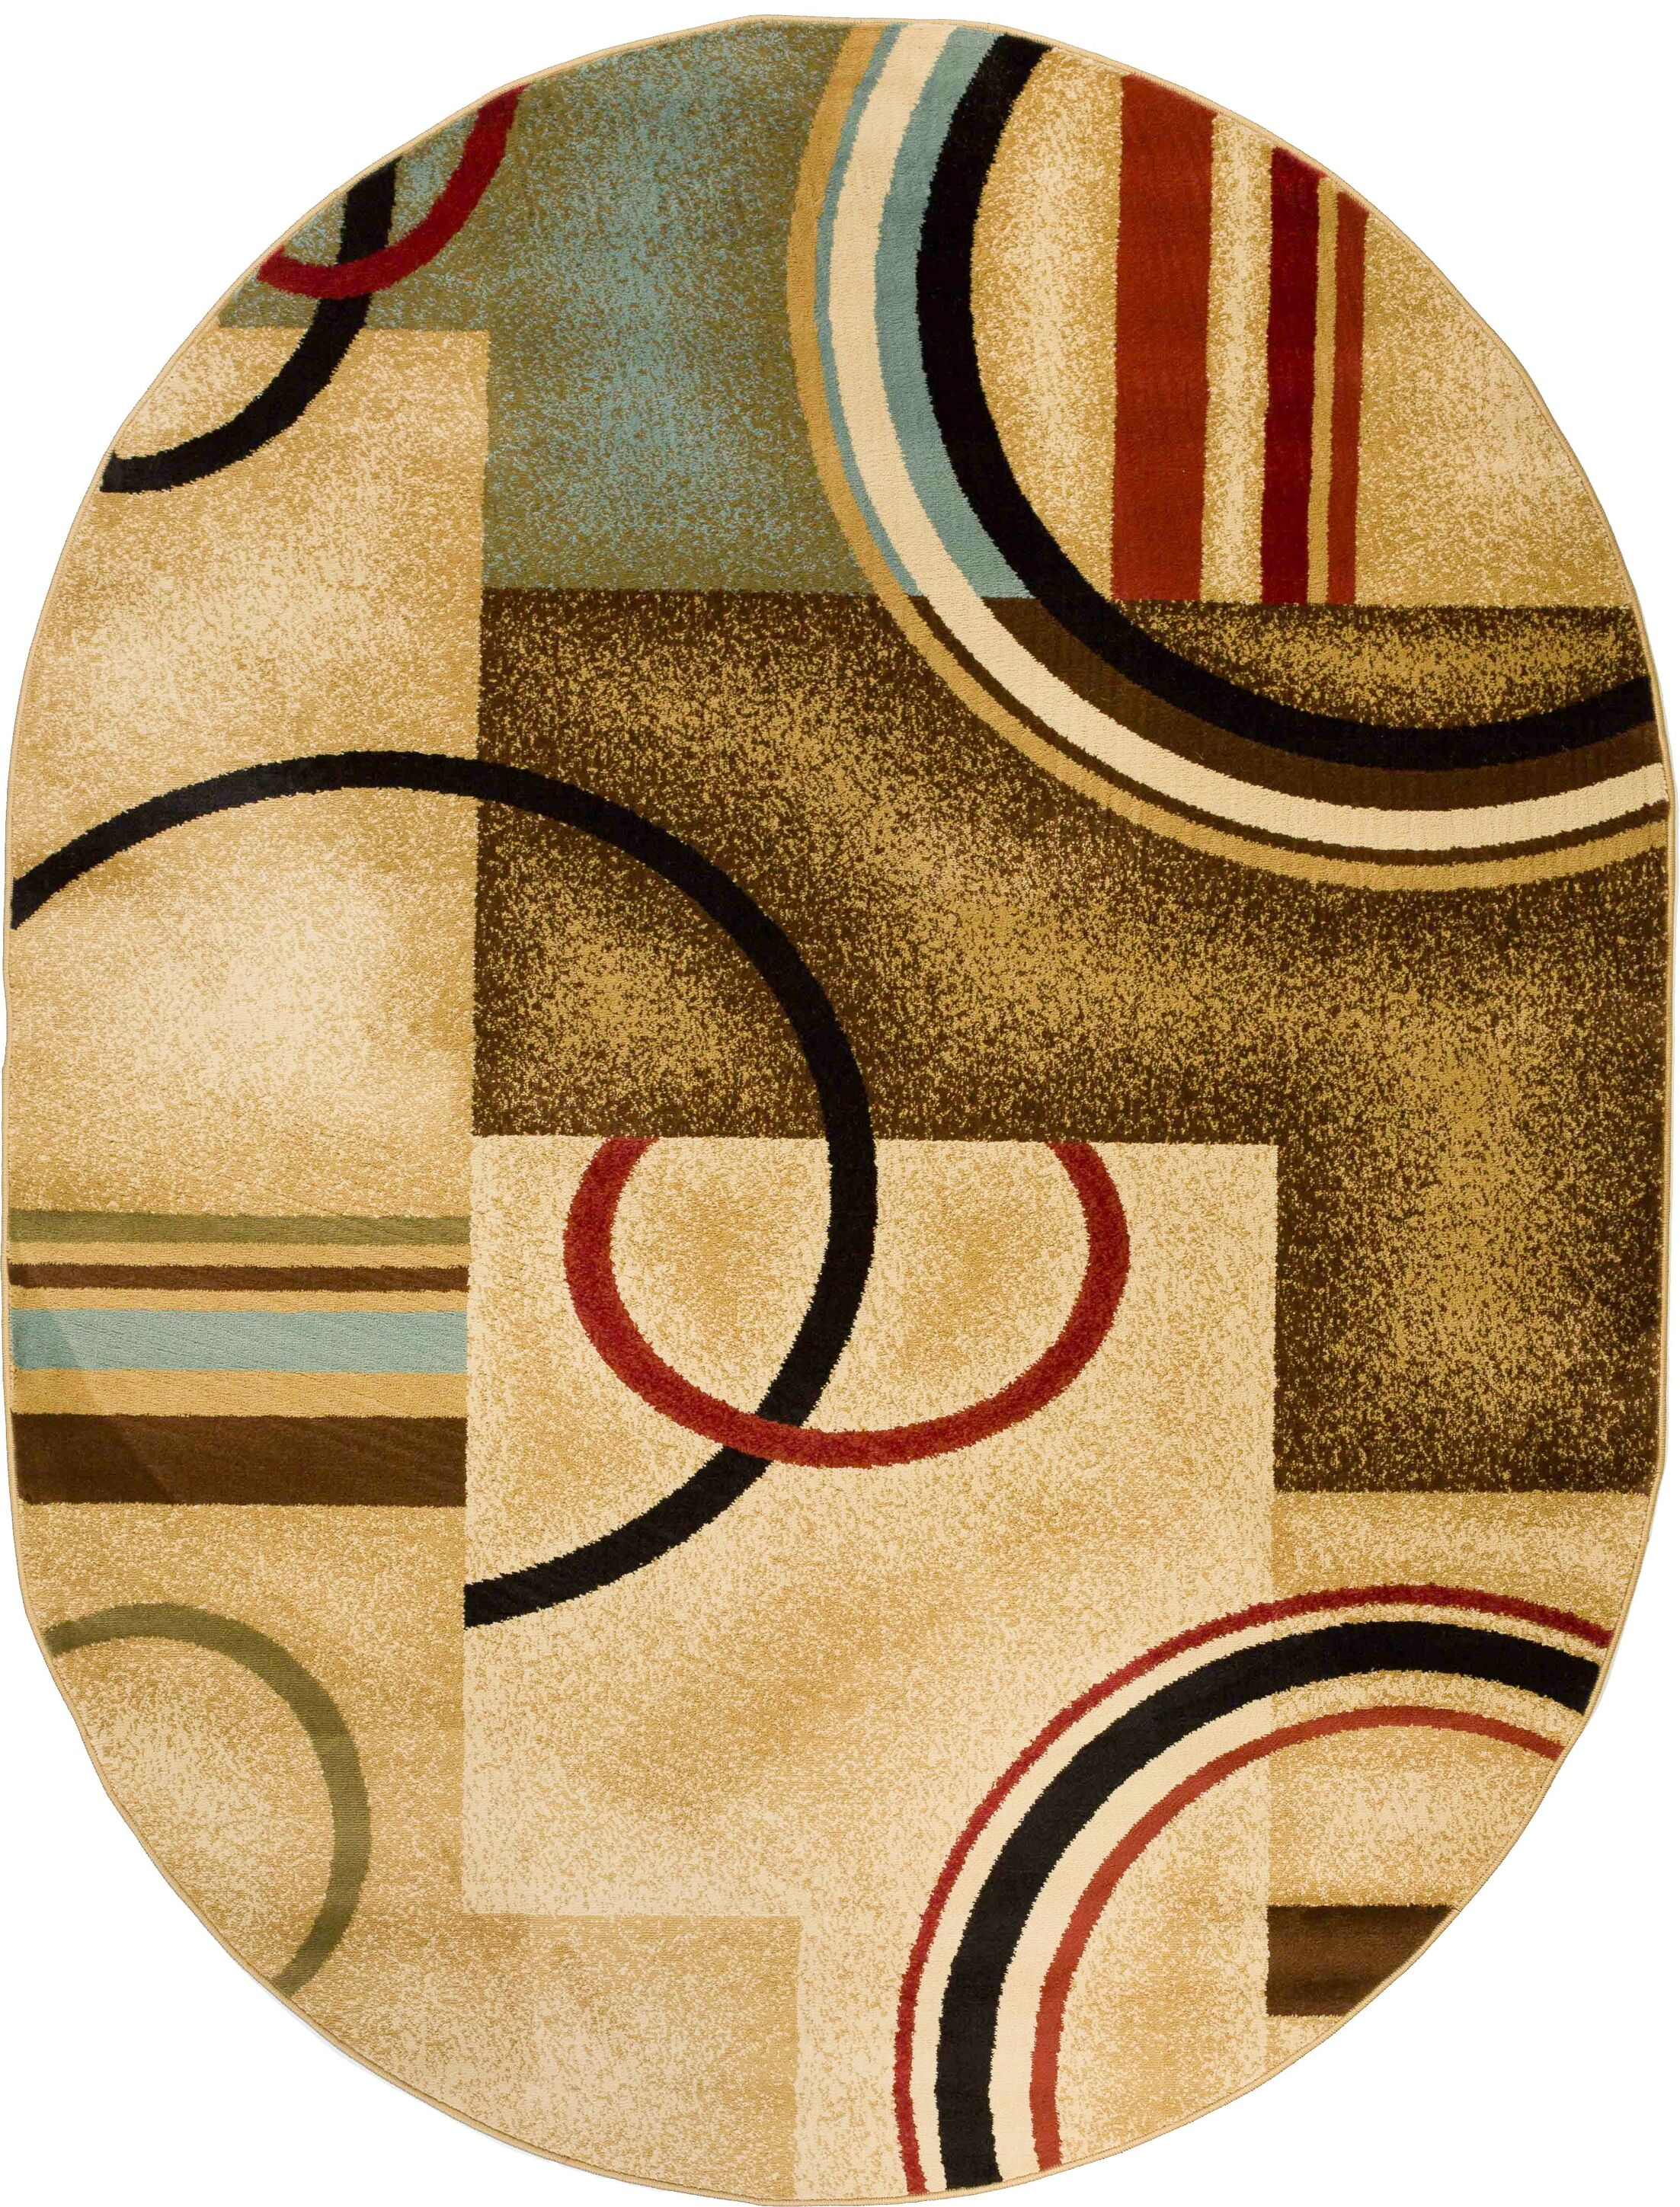 Barclay Ivory/Natural Arcs and Shapes Modern Area Rug Rug Size: Oval 5'3